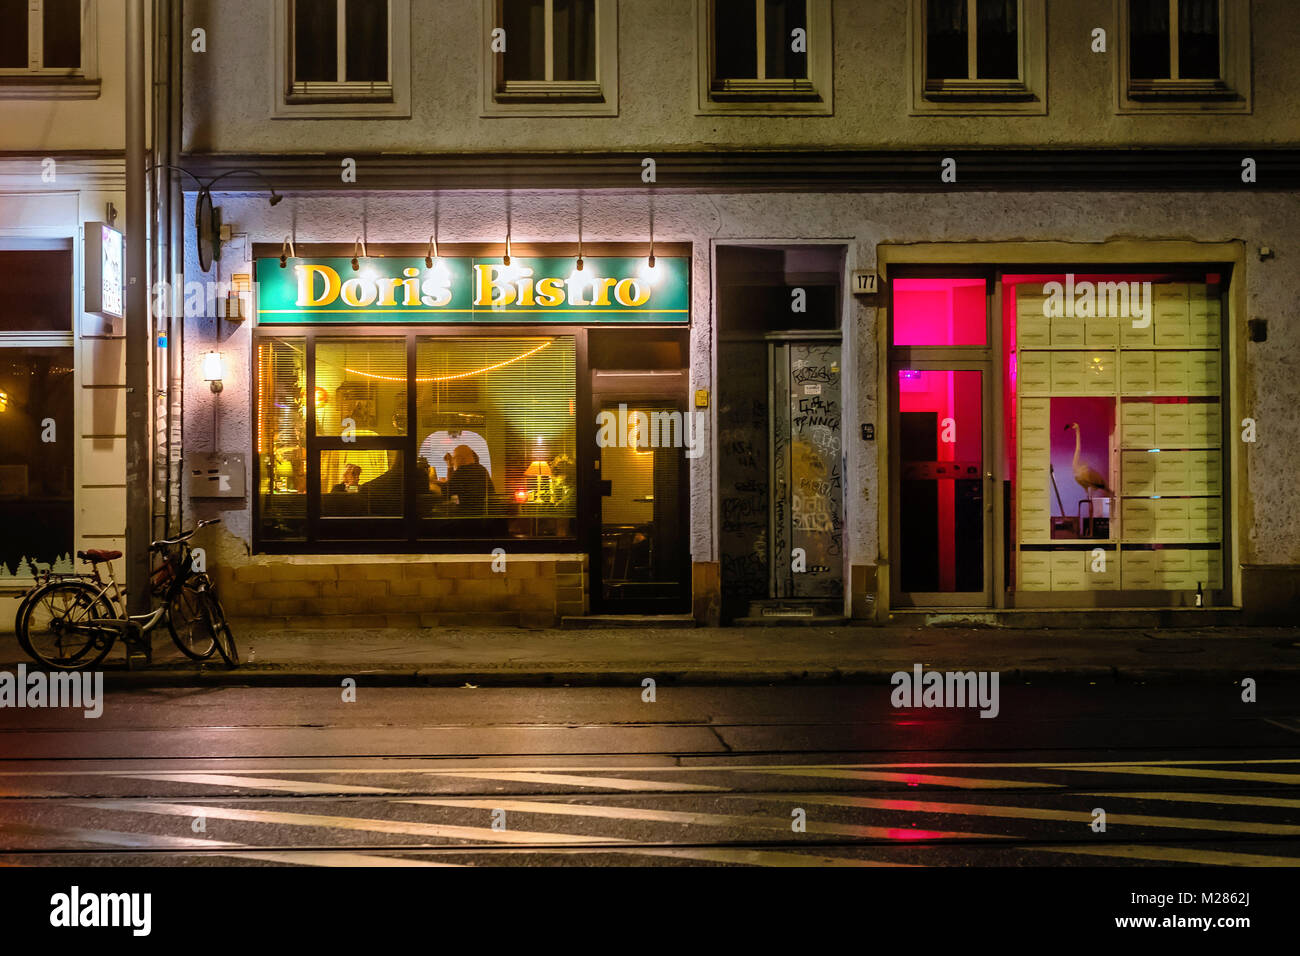 berlin mitte bars stock photos berlin mitte bars stock images alamy. Black Bedroom Furniture Sets. Home Design Ideas